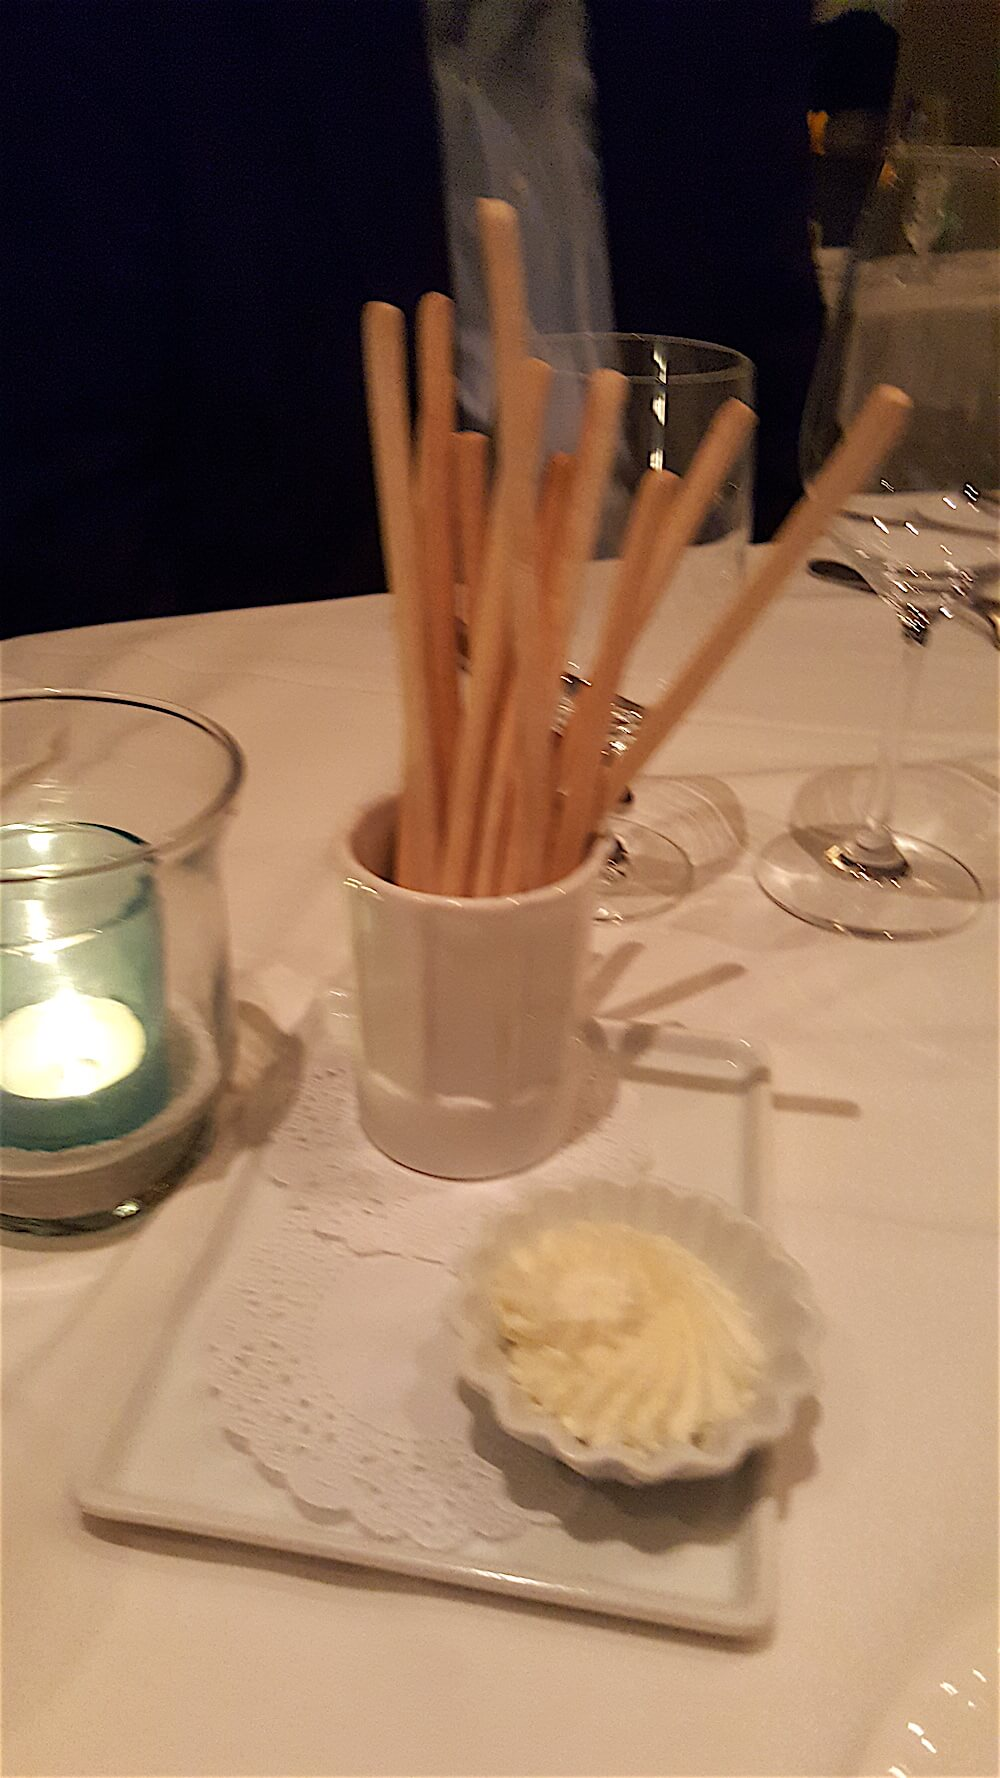 Breadsticks with truffle butter are waiting for you at the table.